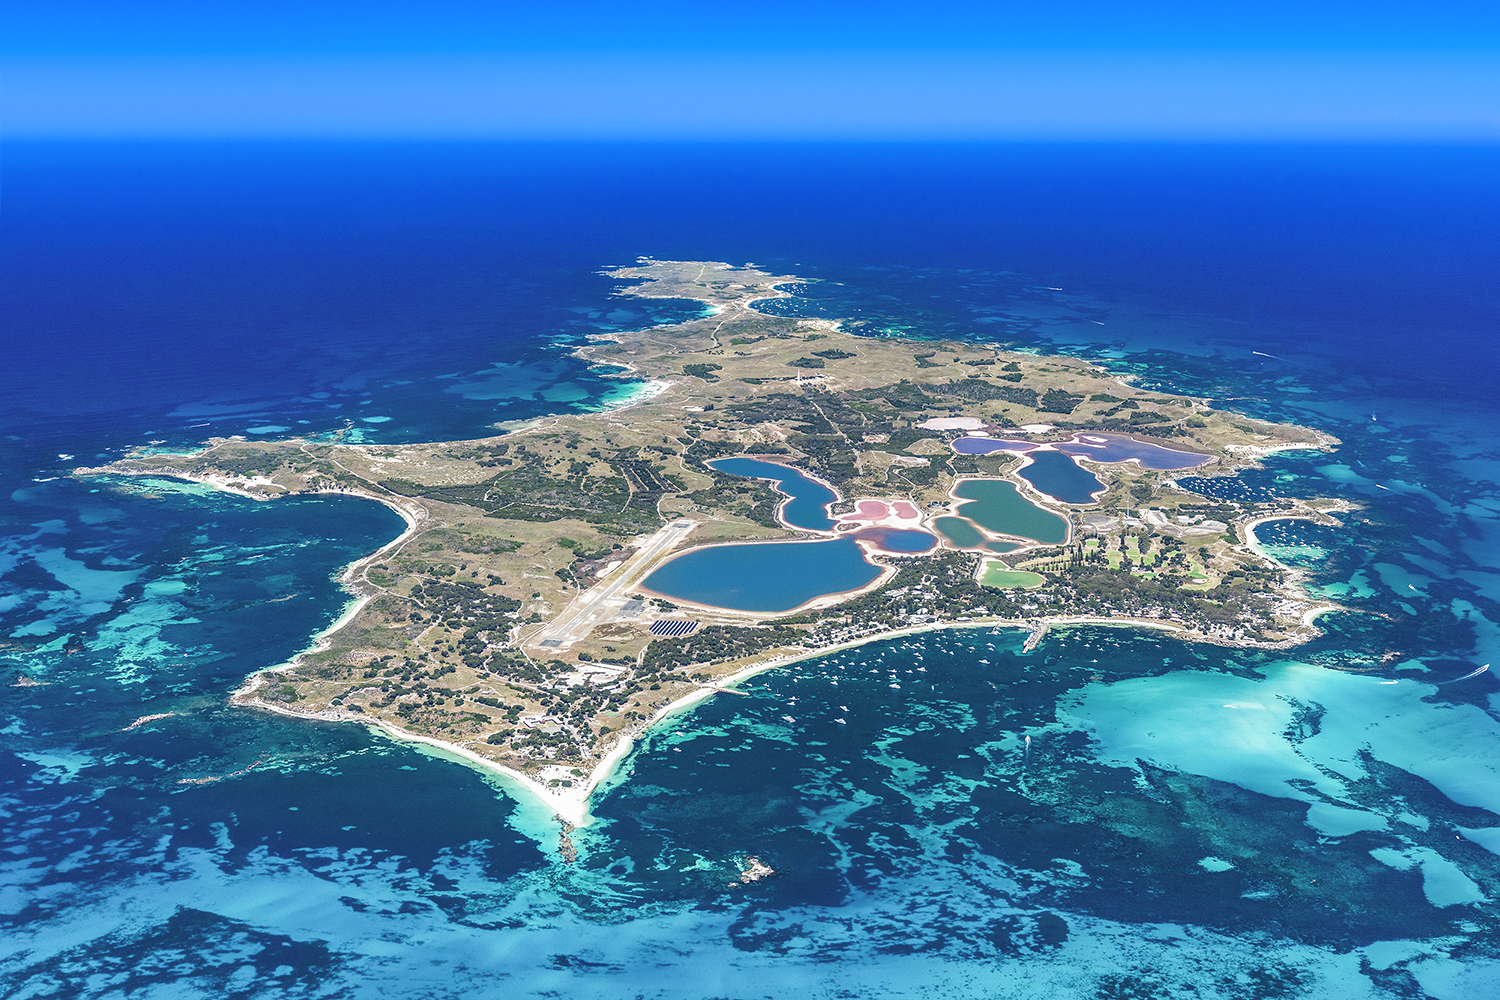 ROTTNEST ISLAND - THE ROCK